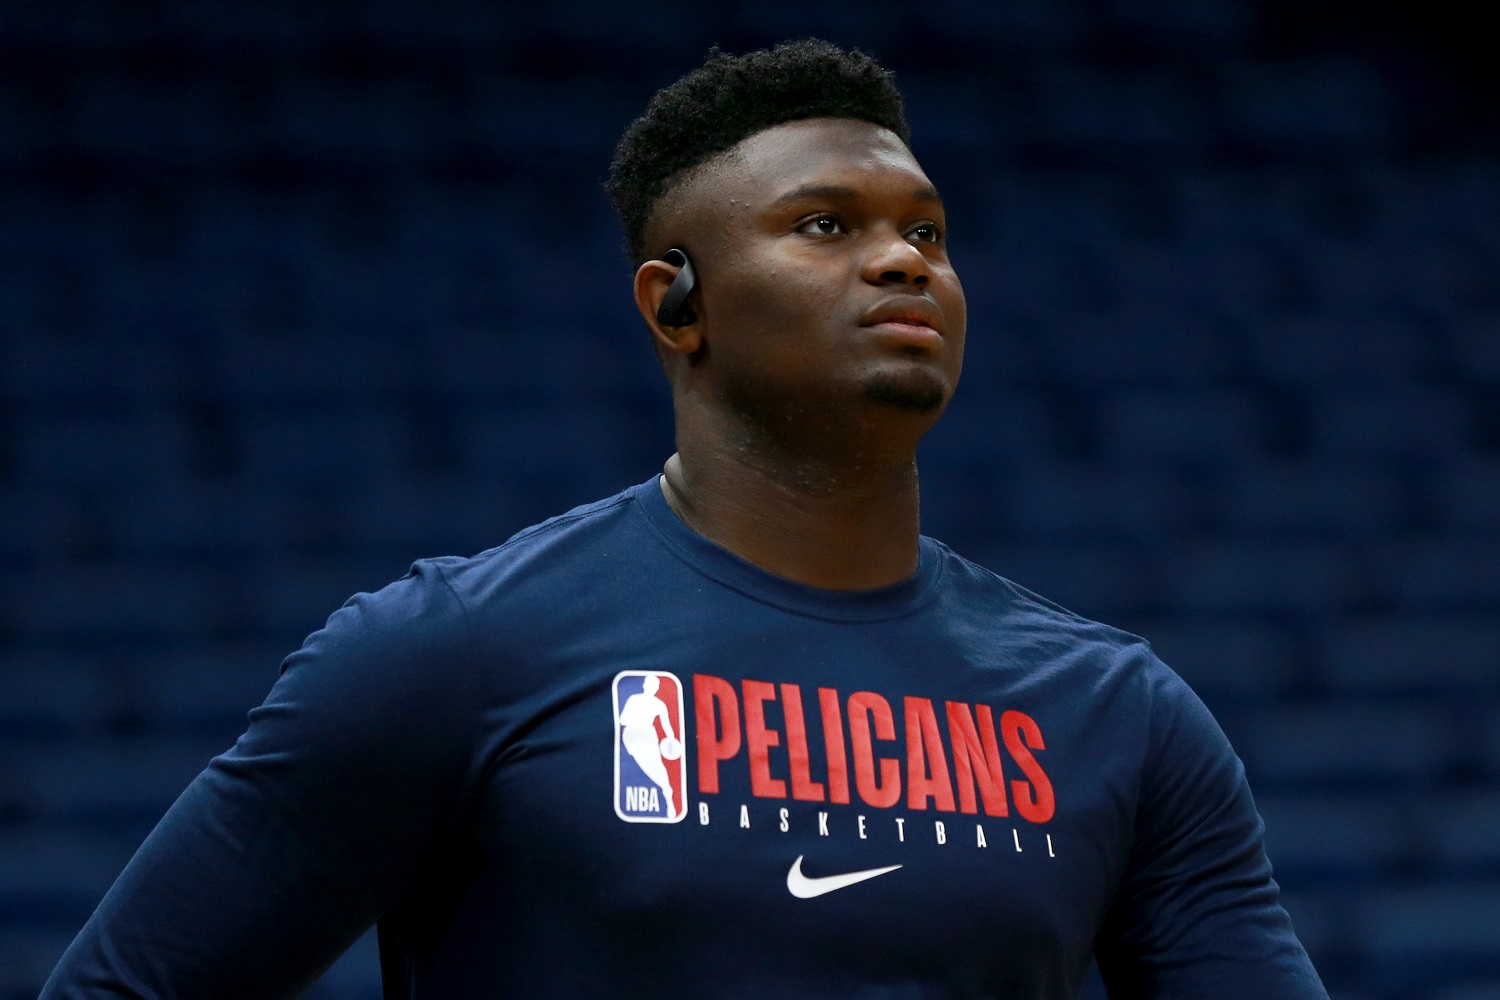 Pelicans Can't Stop Buzzing About Zion Williamson